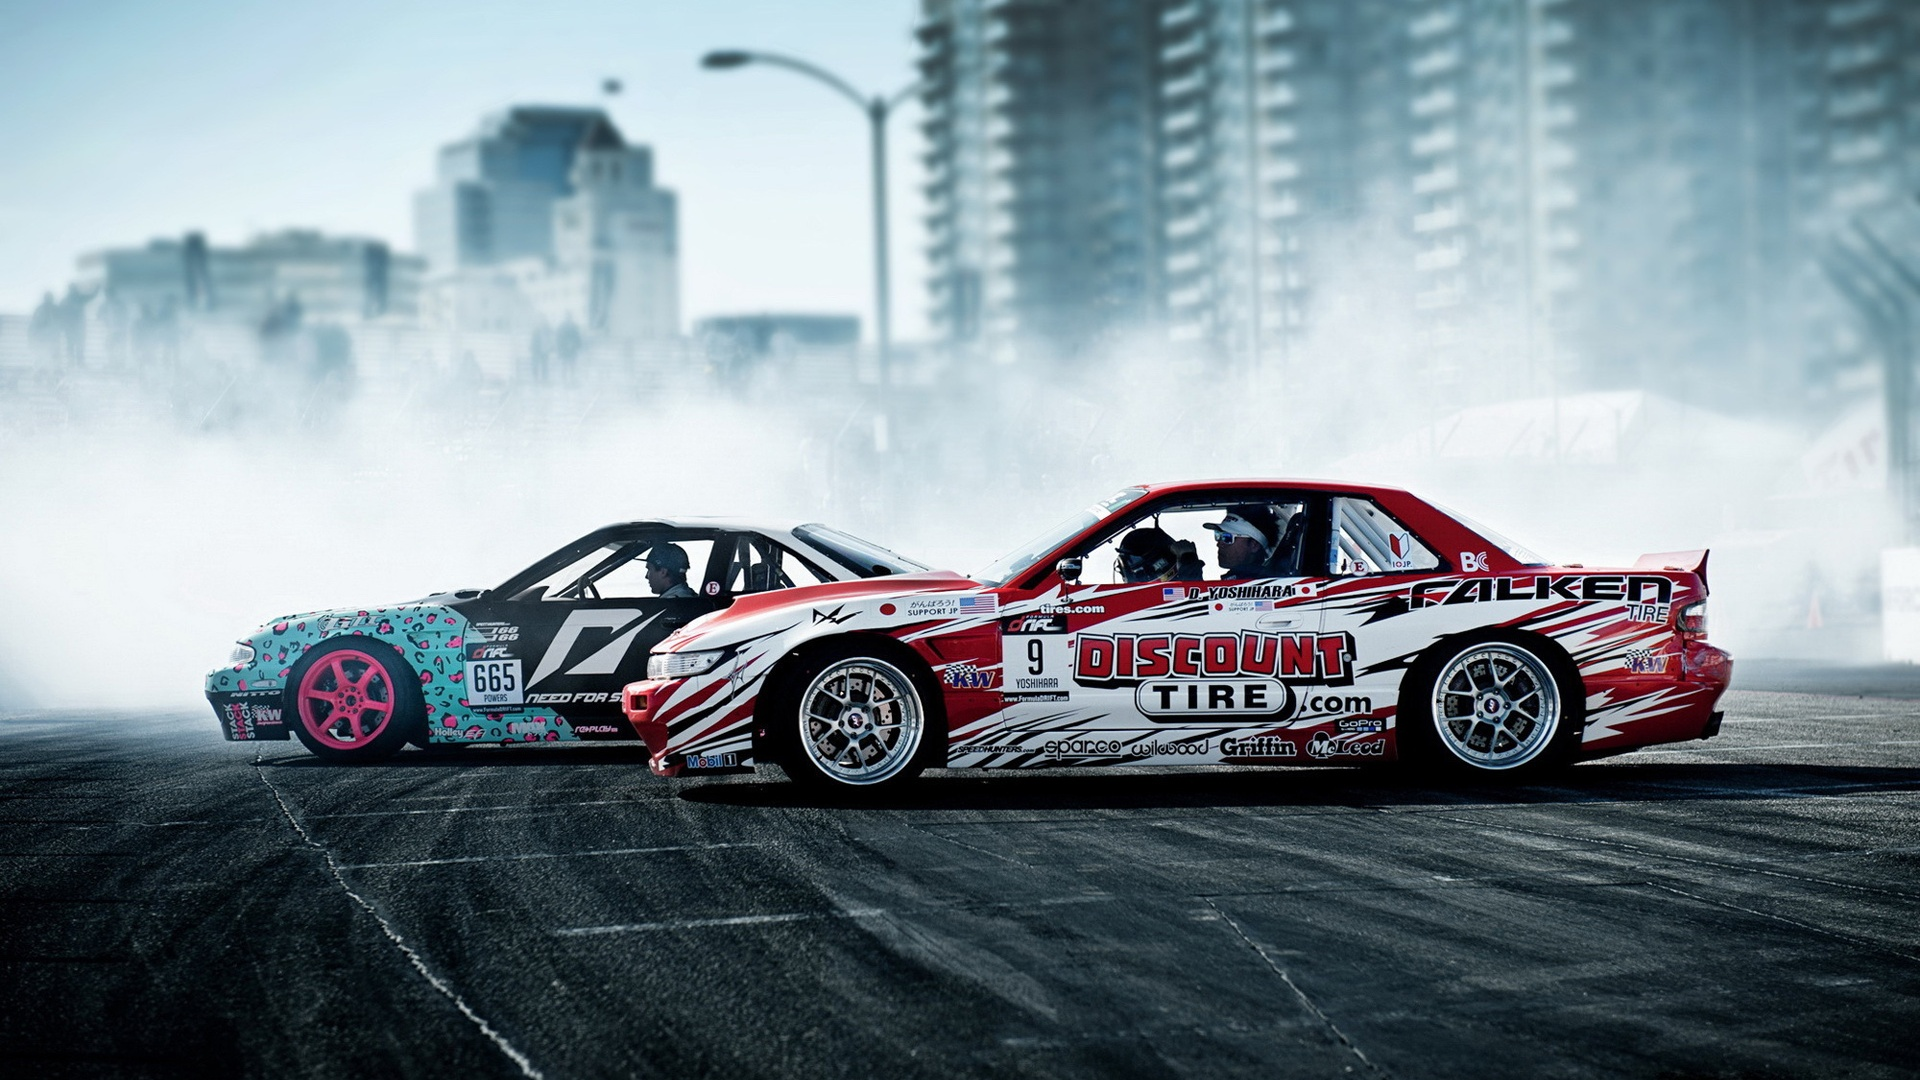 Best Drifting Images On Pinterest Drifting Cars Dream Cars